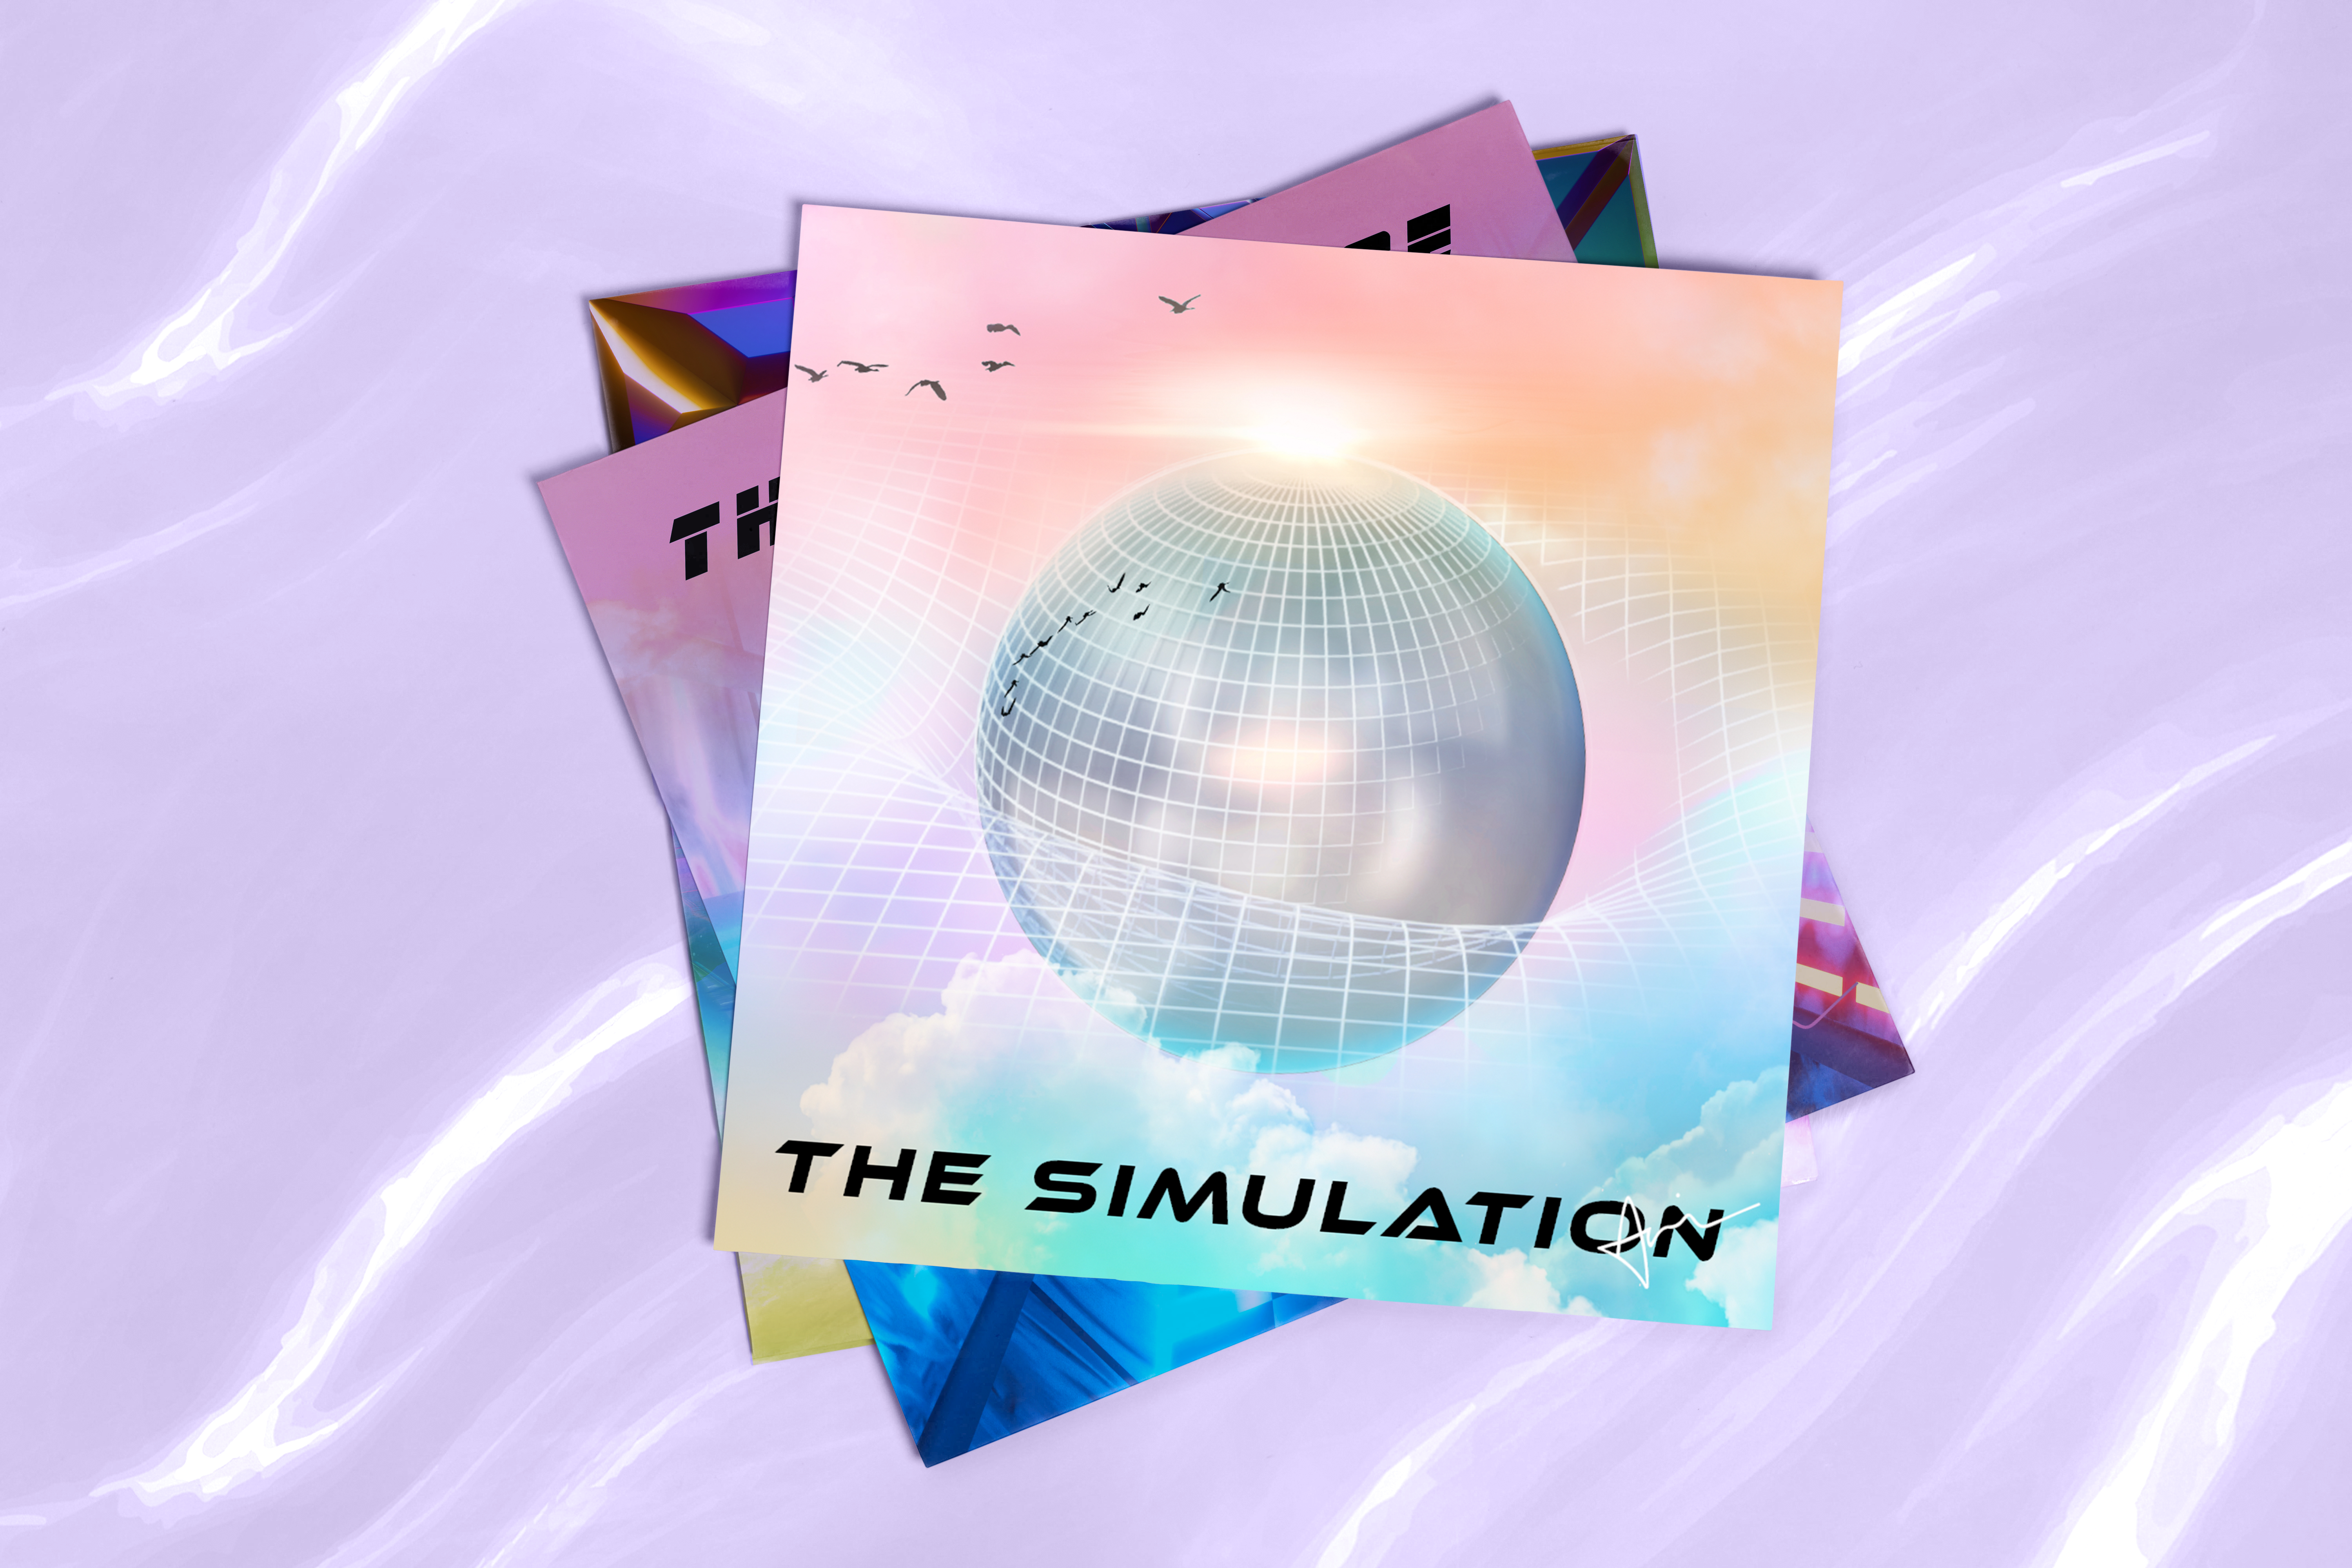 The Simulation - An Electronic Trance and Trip Hop Album by Acacia Carr, 2021